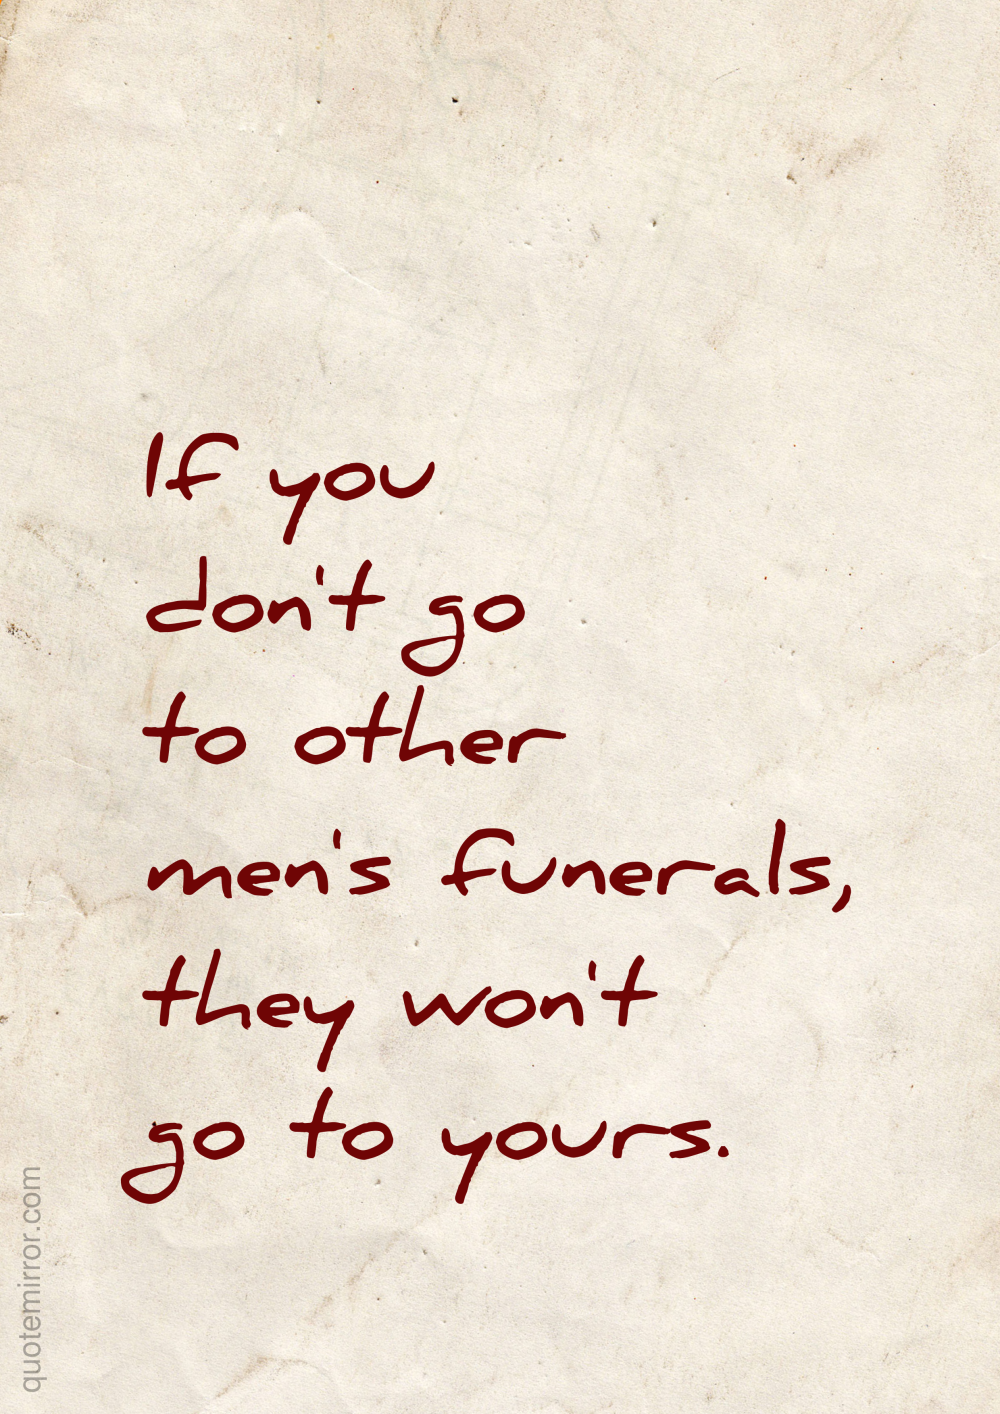 Quotes For Funerals Beyond Death  Funeral Proverbs And Death Quotes